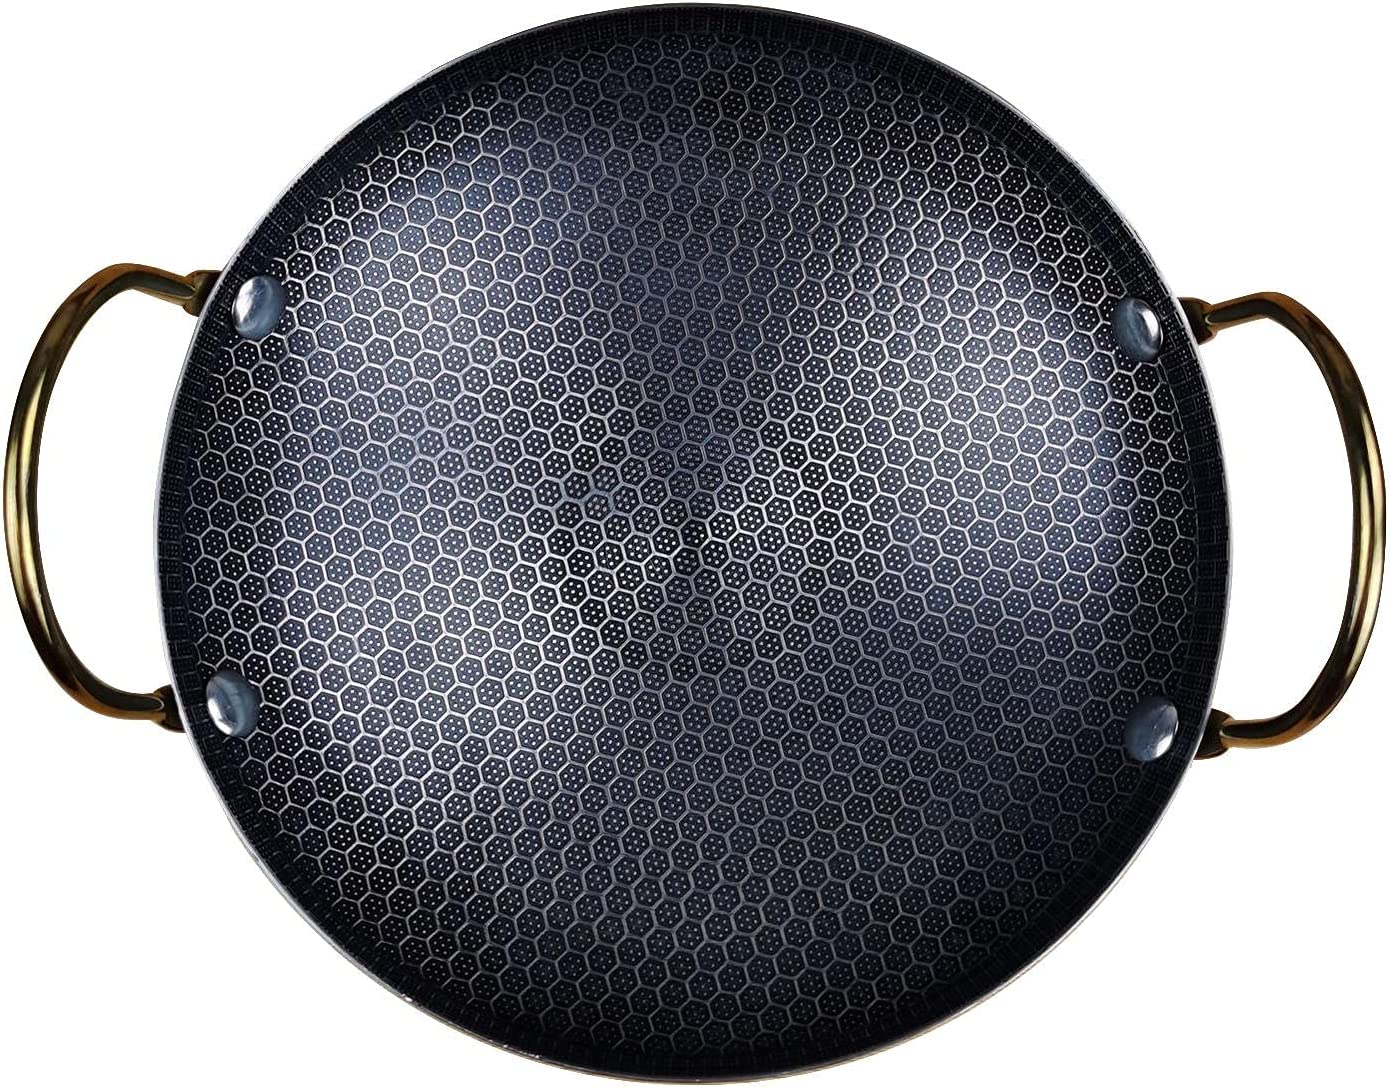 Wok Hammered Carbon Steel Pan with Fry Quantity limited Stir Award Chinese Pans